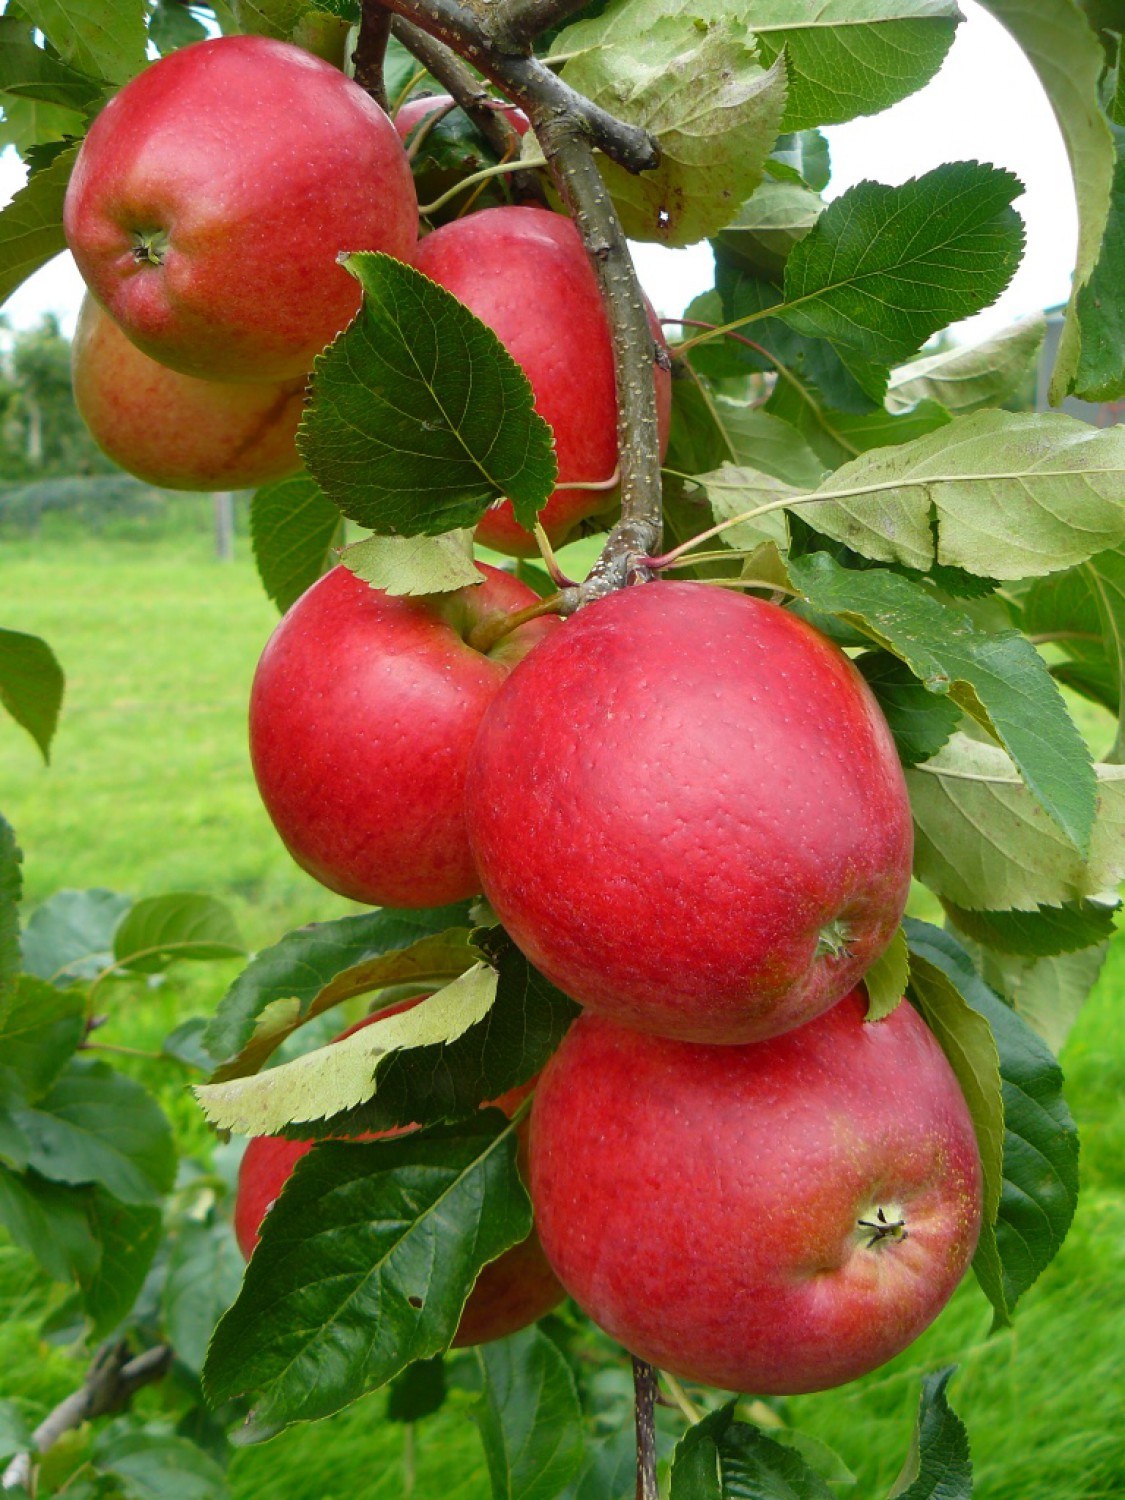 The Apple Day 2021